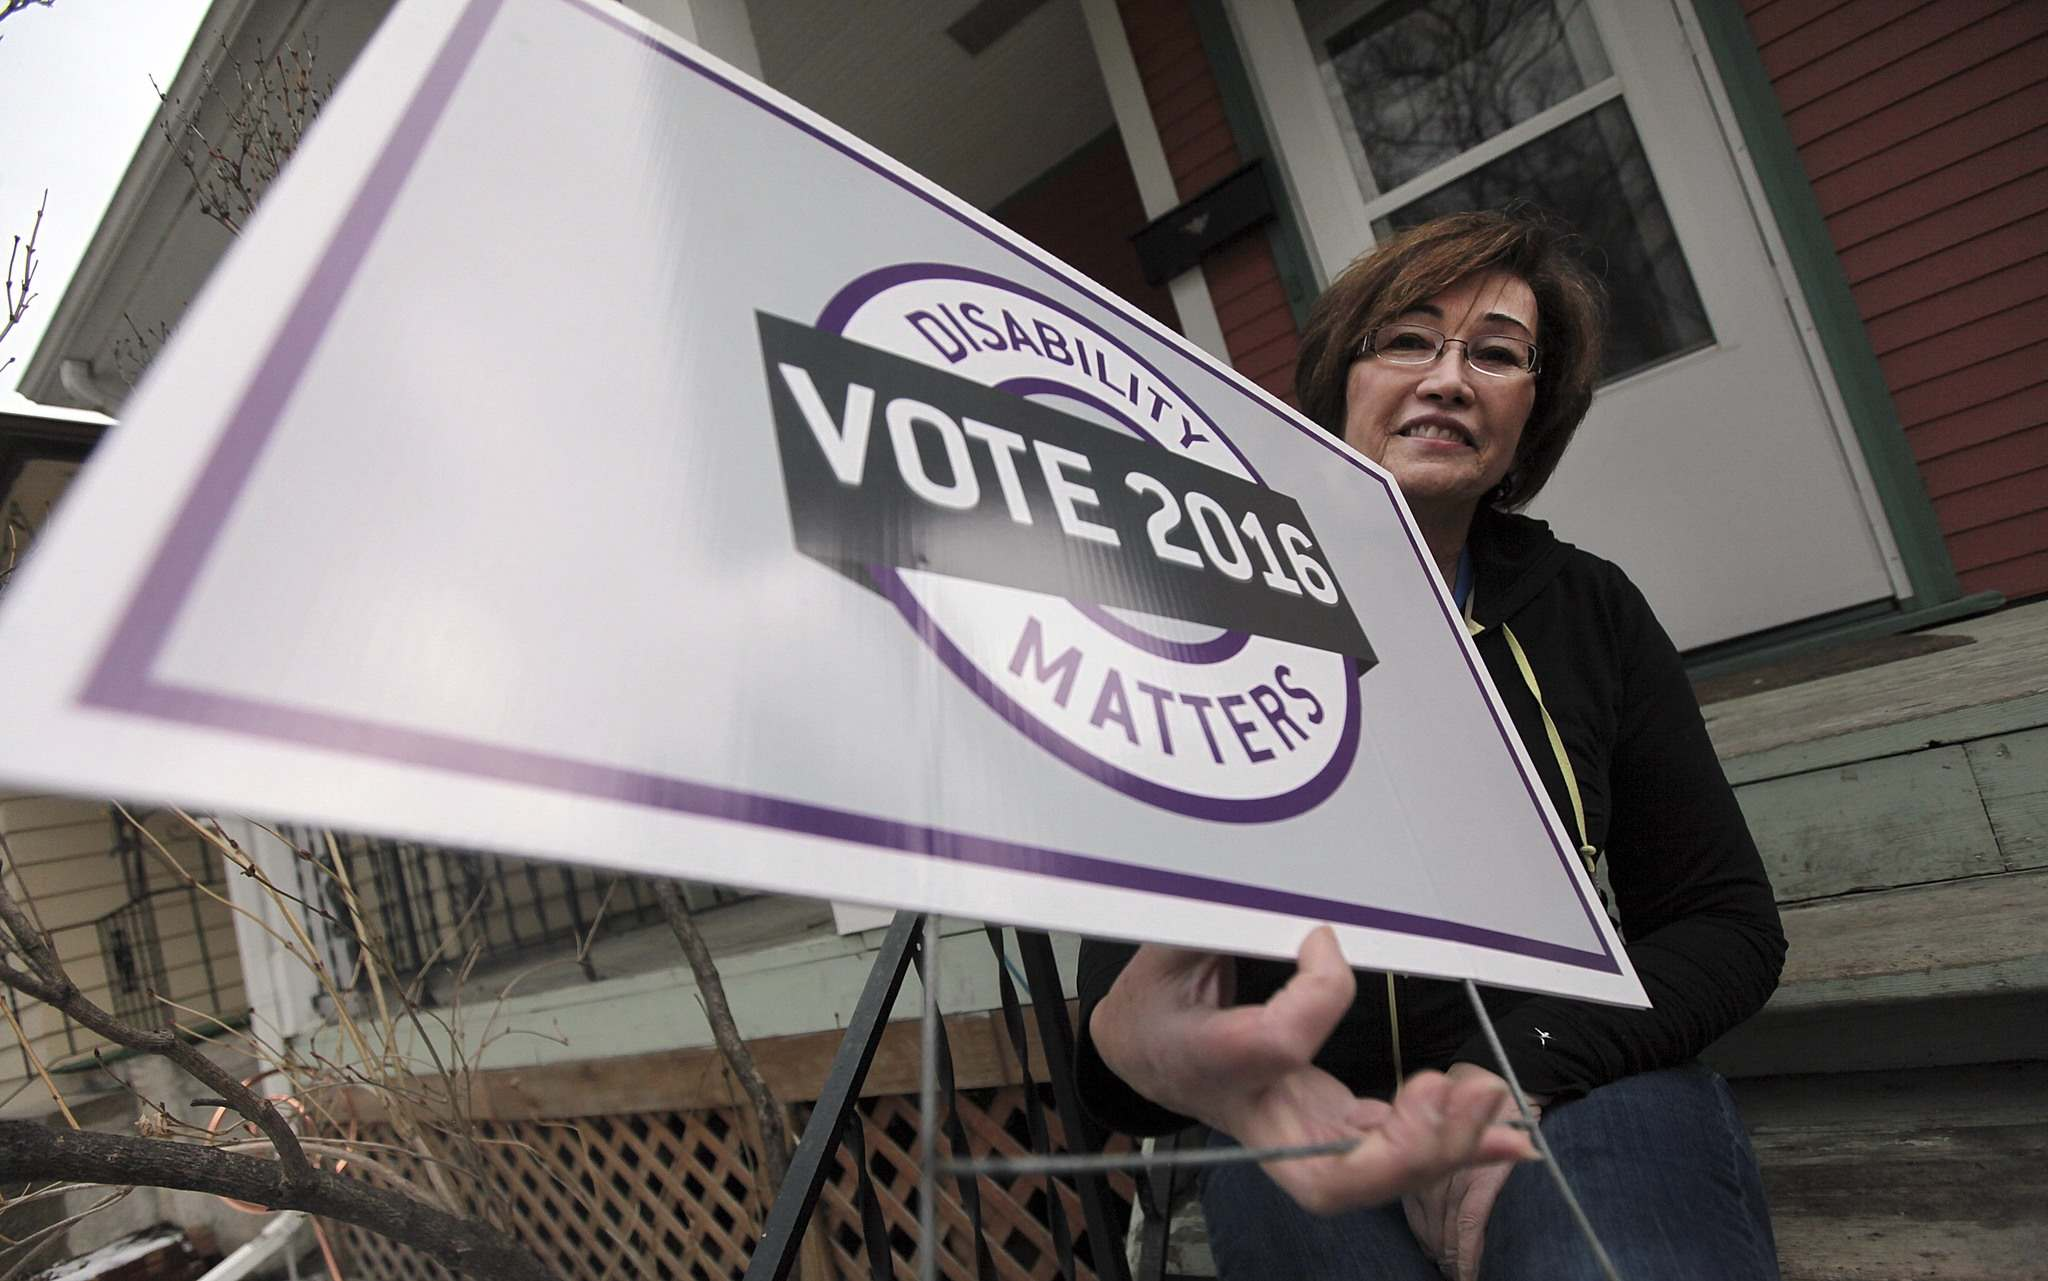 PHIL HOSSACK / WINNIPEG FREE PRESS</p><p>Disability Matters' Natalie Mulaire. The campaign not only encourages people living with special needs to vote, but to examine how parties and candidates address issues affecting their lives.</p>